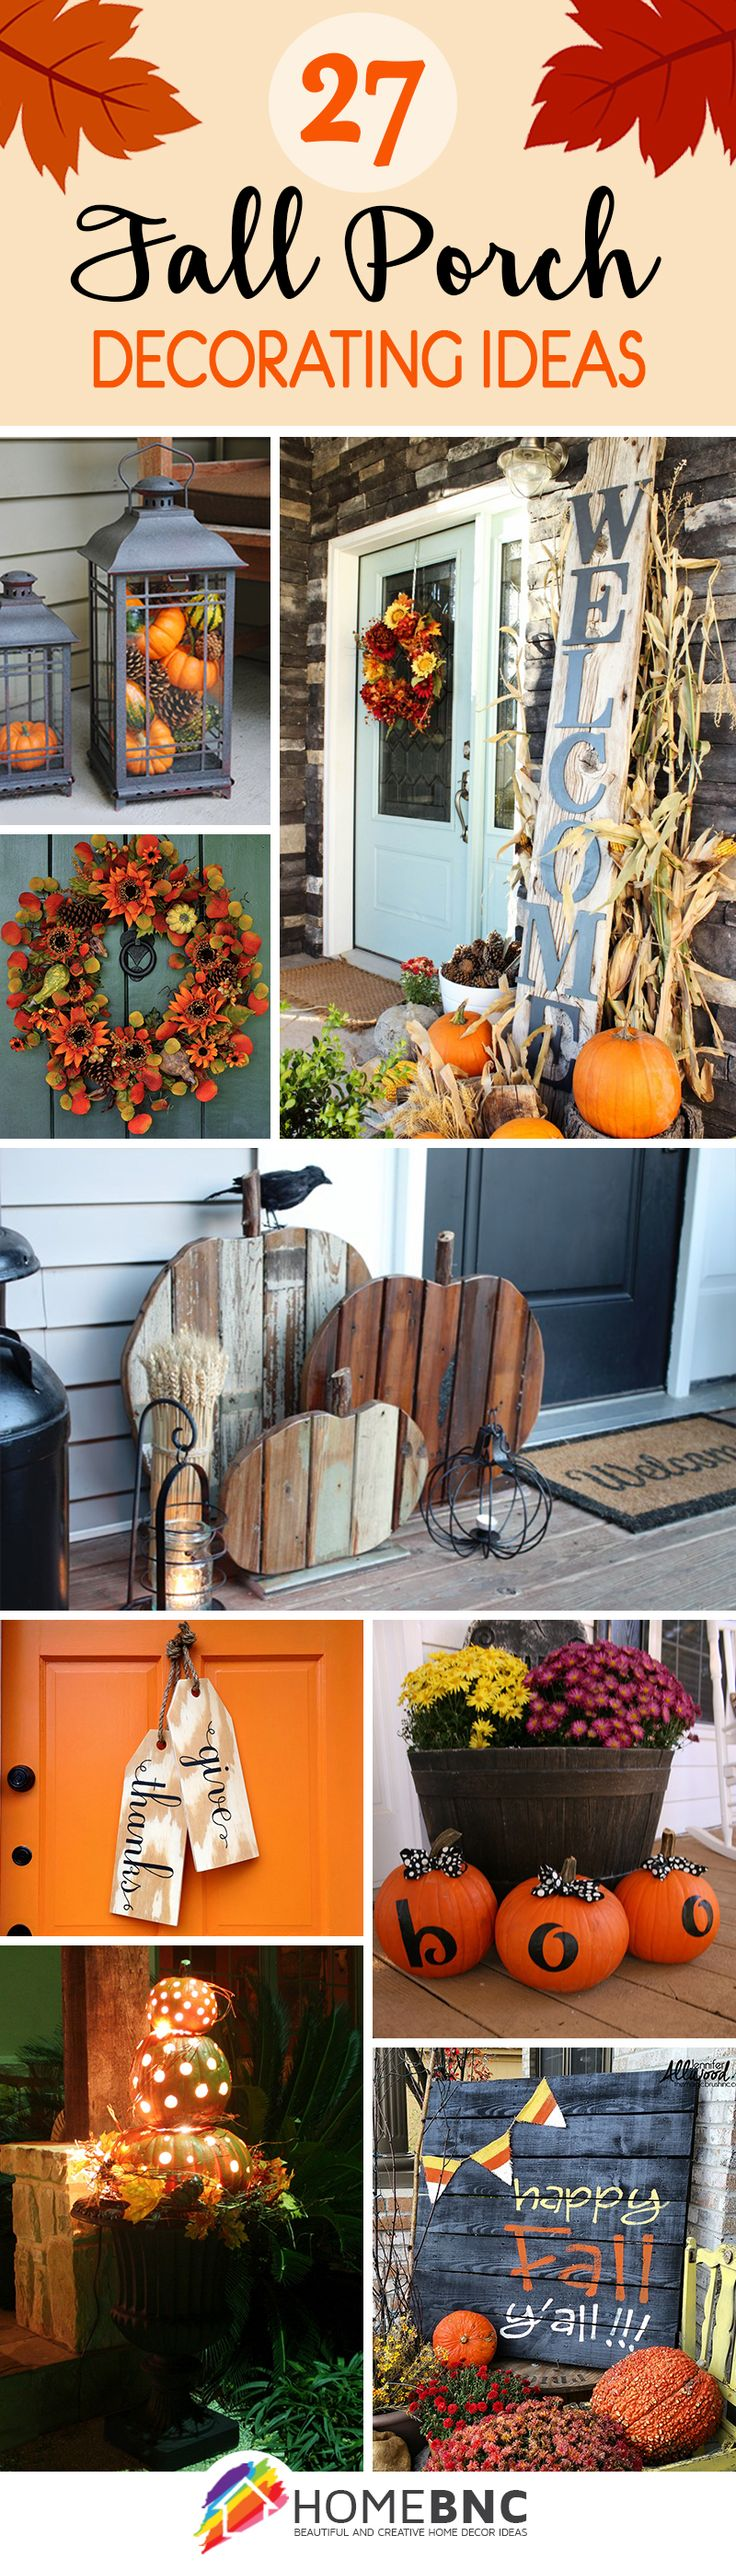 best 25 fall door decorations ideas on pinterest fall door wreaths door monogram and fall burlap wreaths for front door - Homes Decorated For Halloween